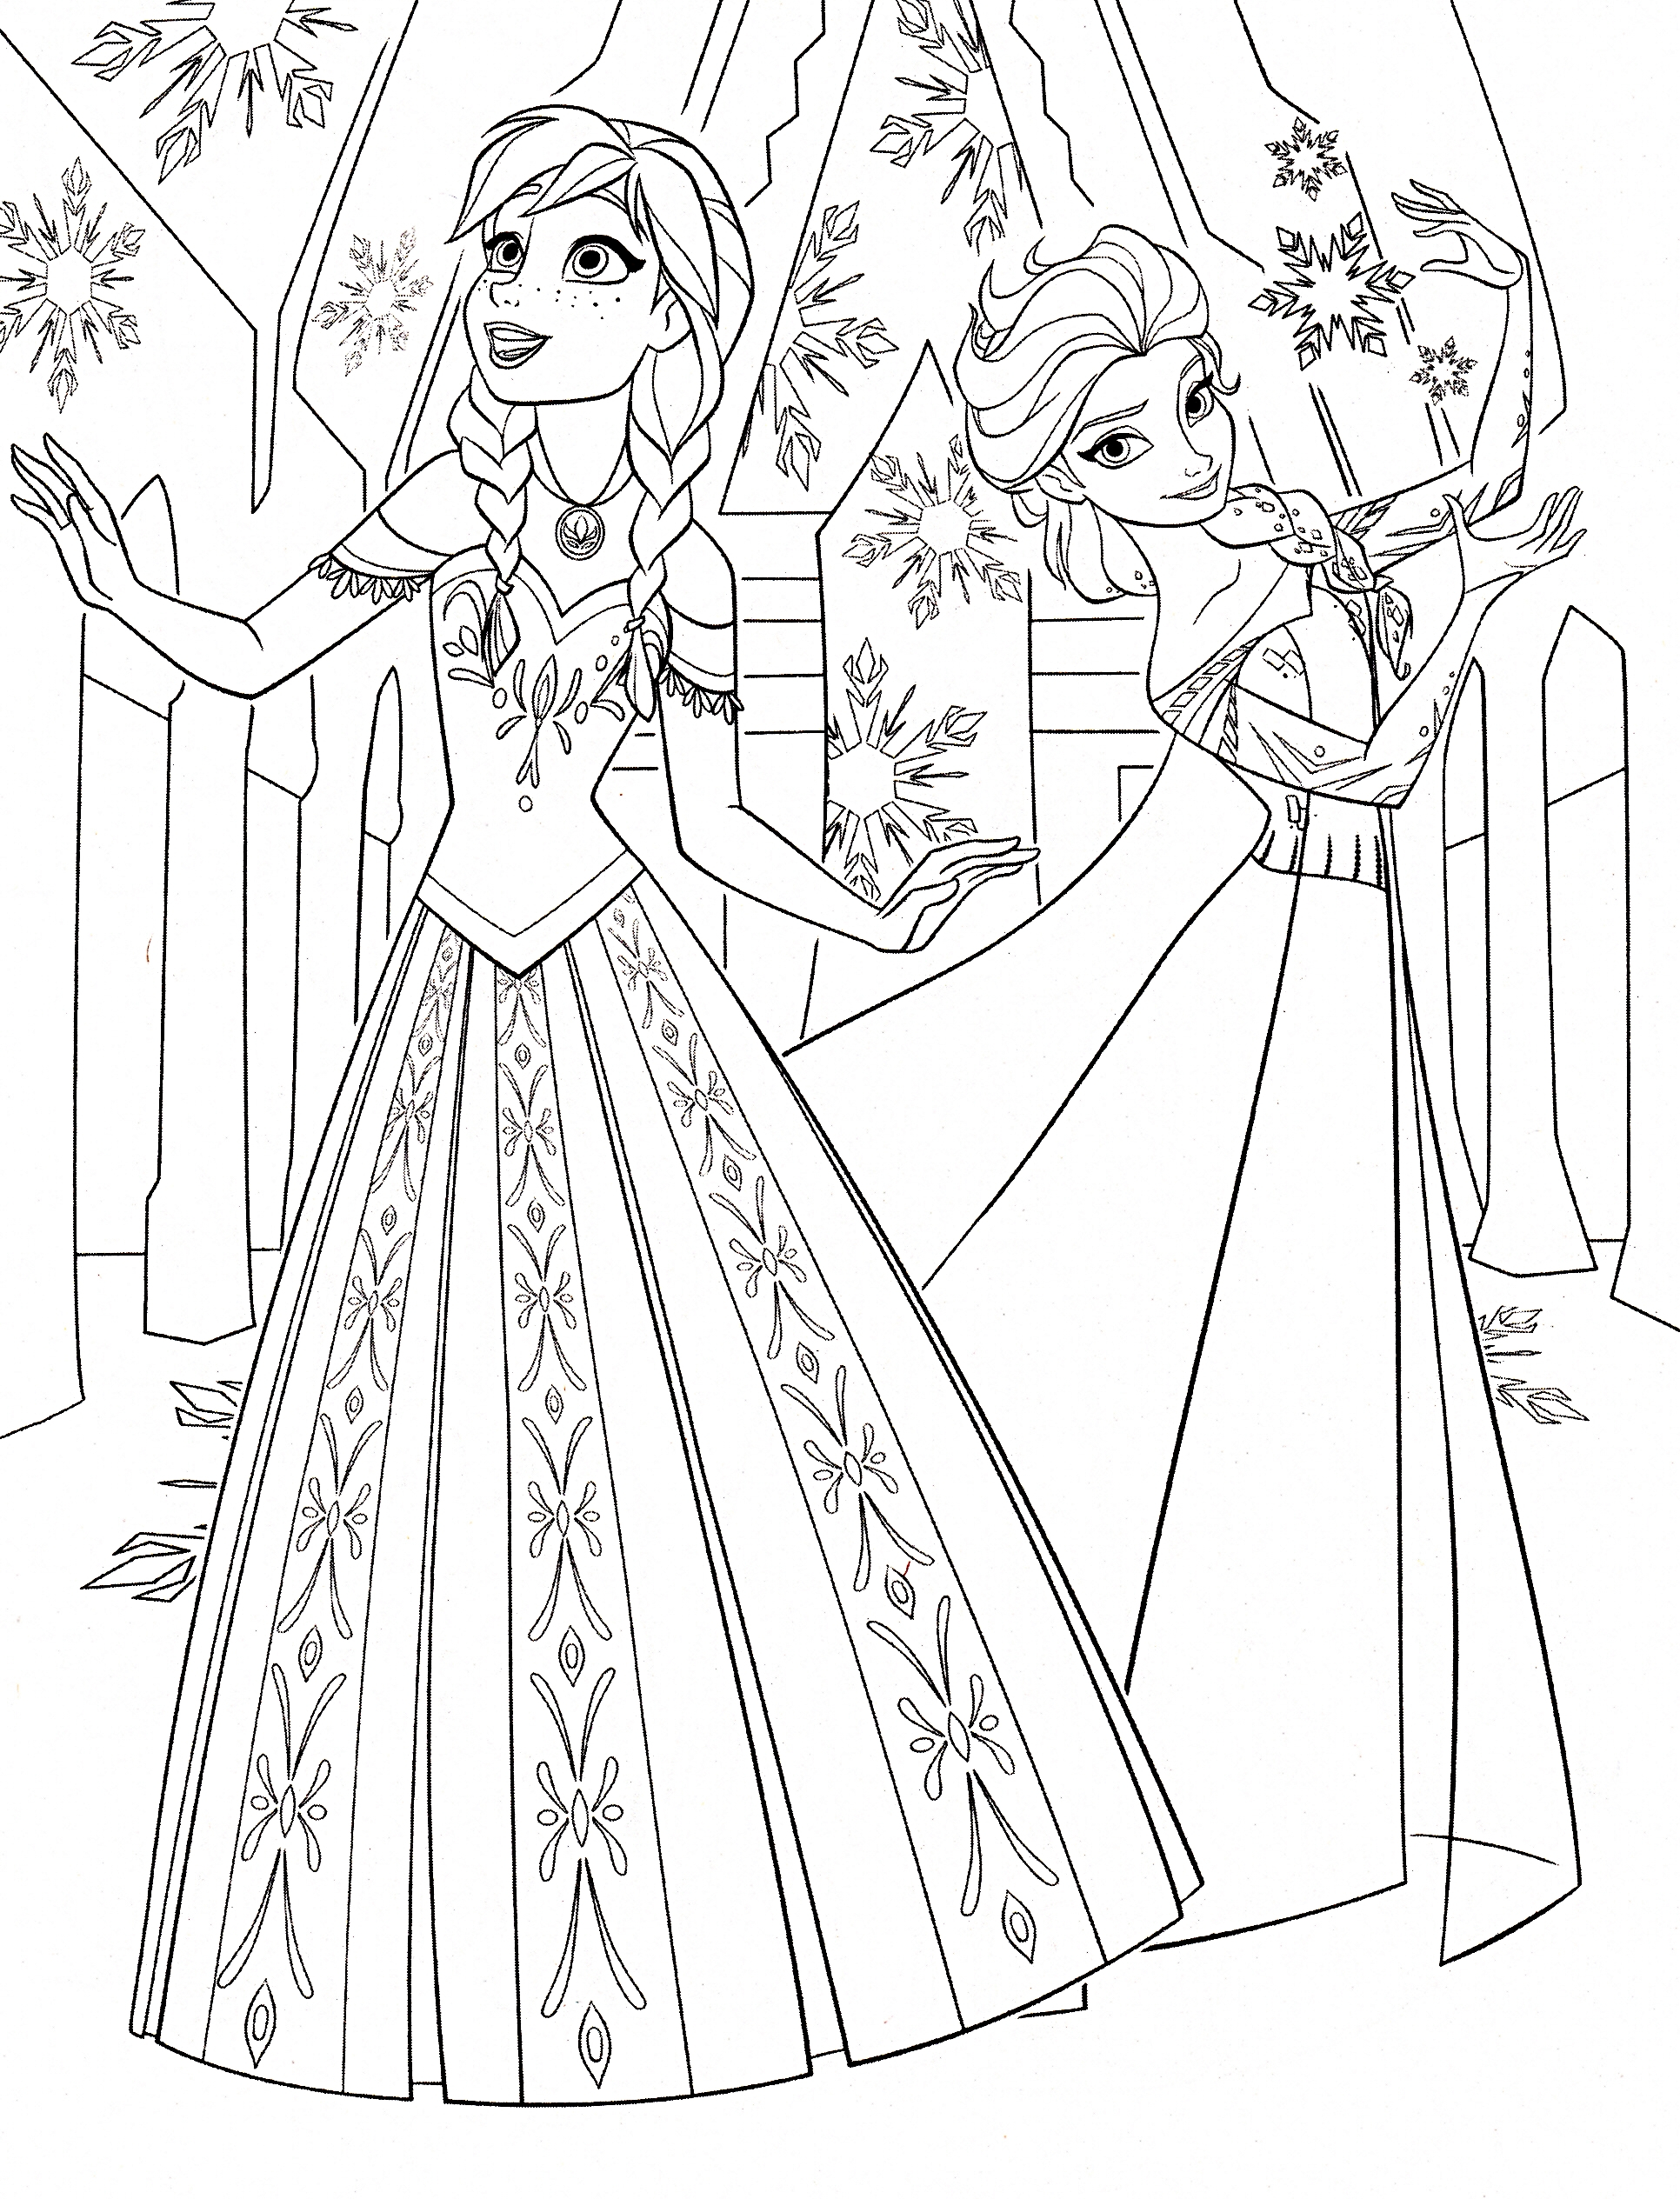 Disney Frozen Elsa Coloring Pages To Print Of Amusing Free Gallery